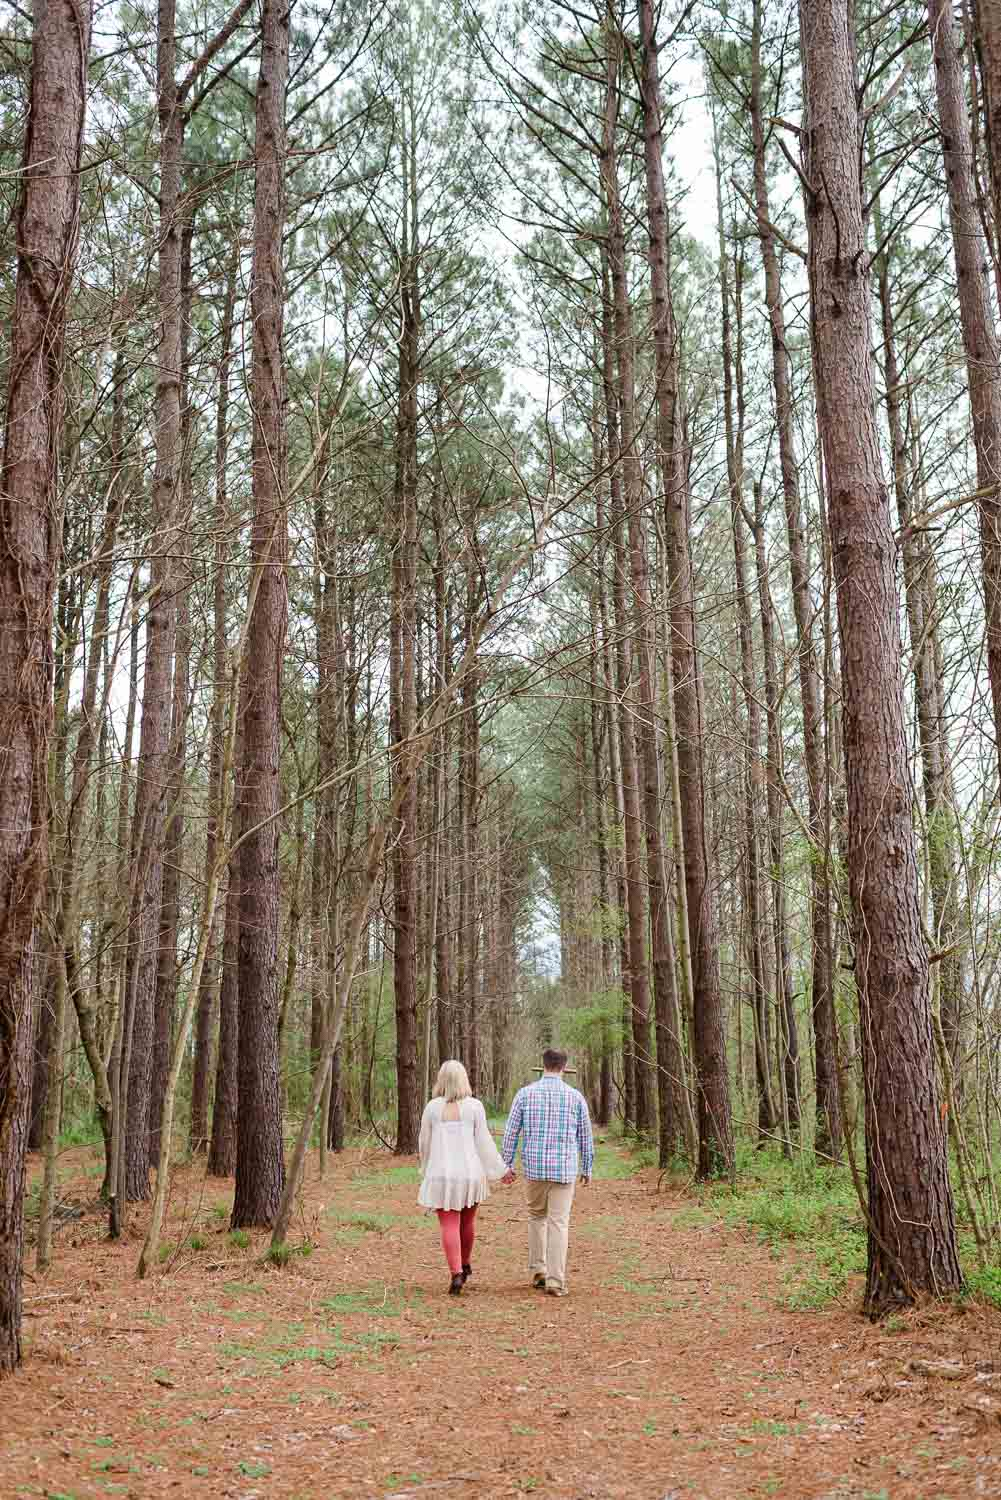 two people outside walking off in the distance through tall pine trees into the